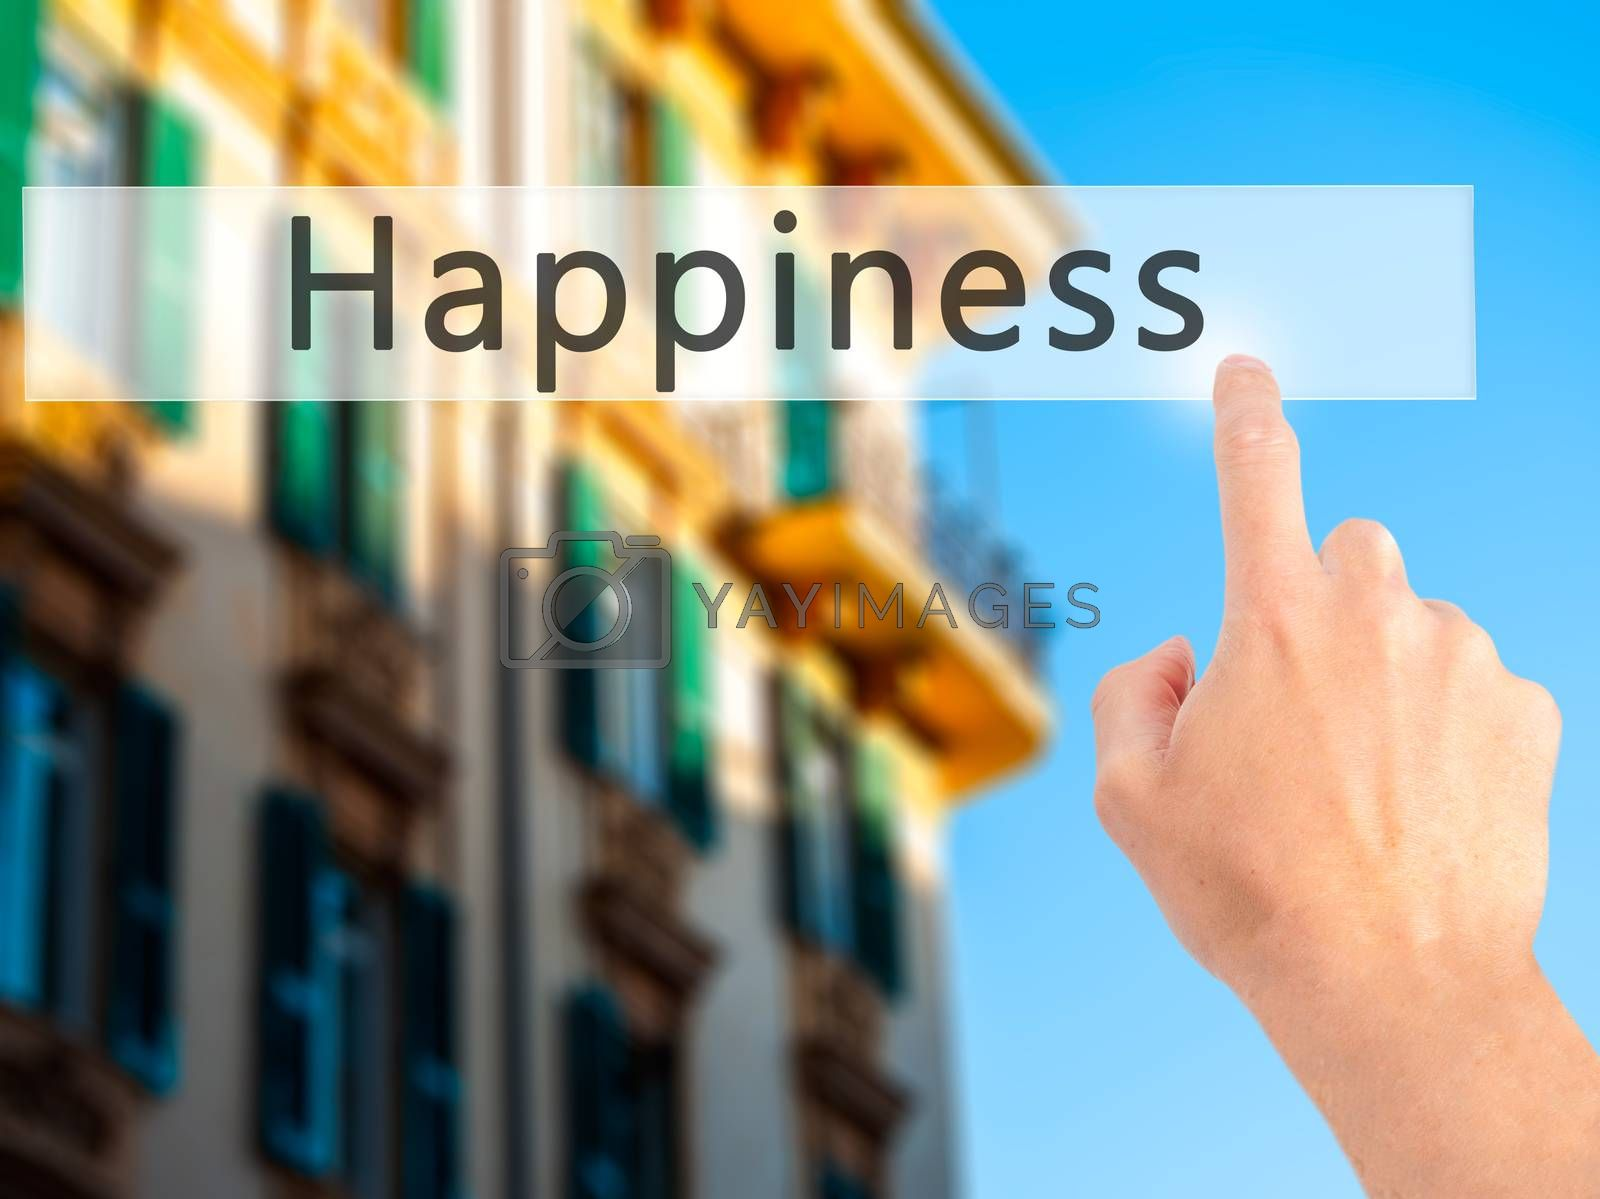 Happiness - Hand pressing a button on blurred background concept by netsay.net